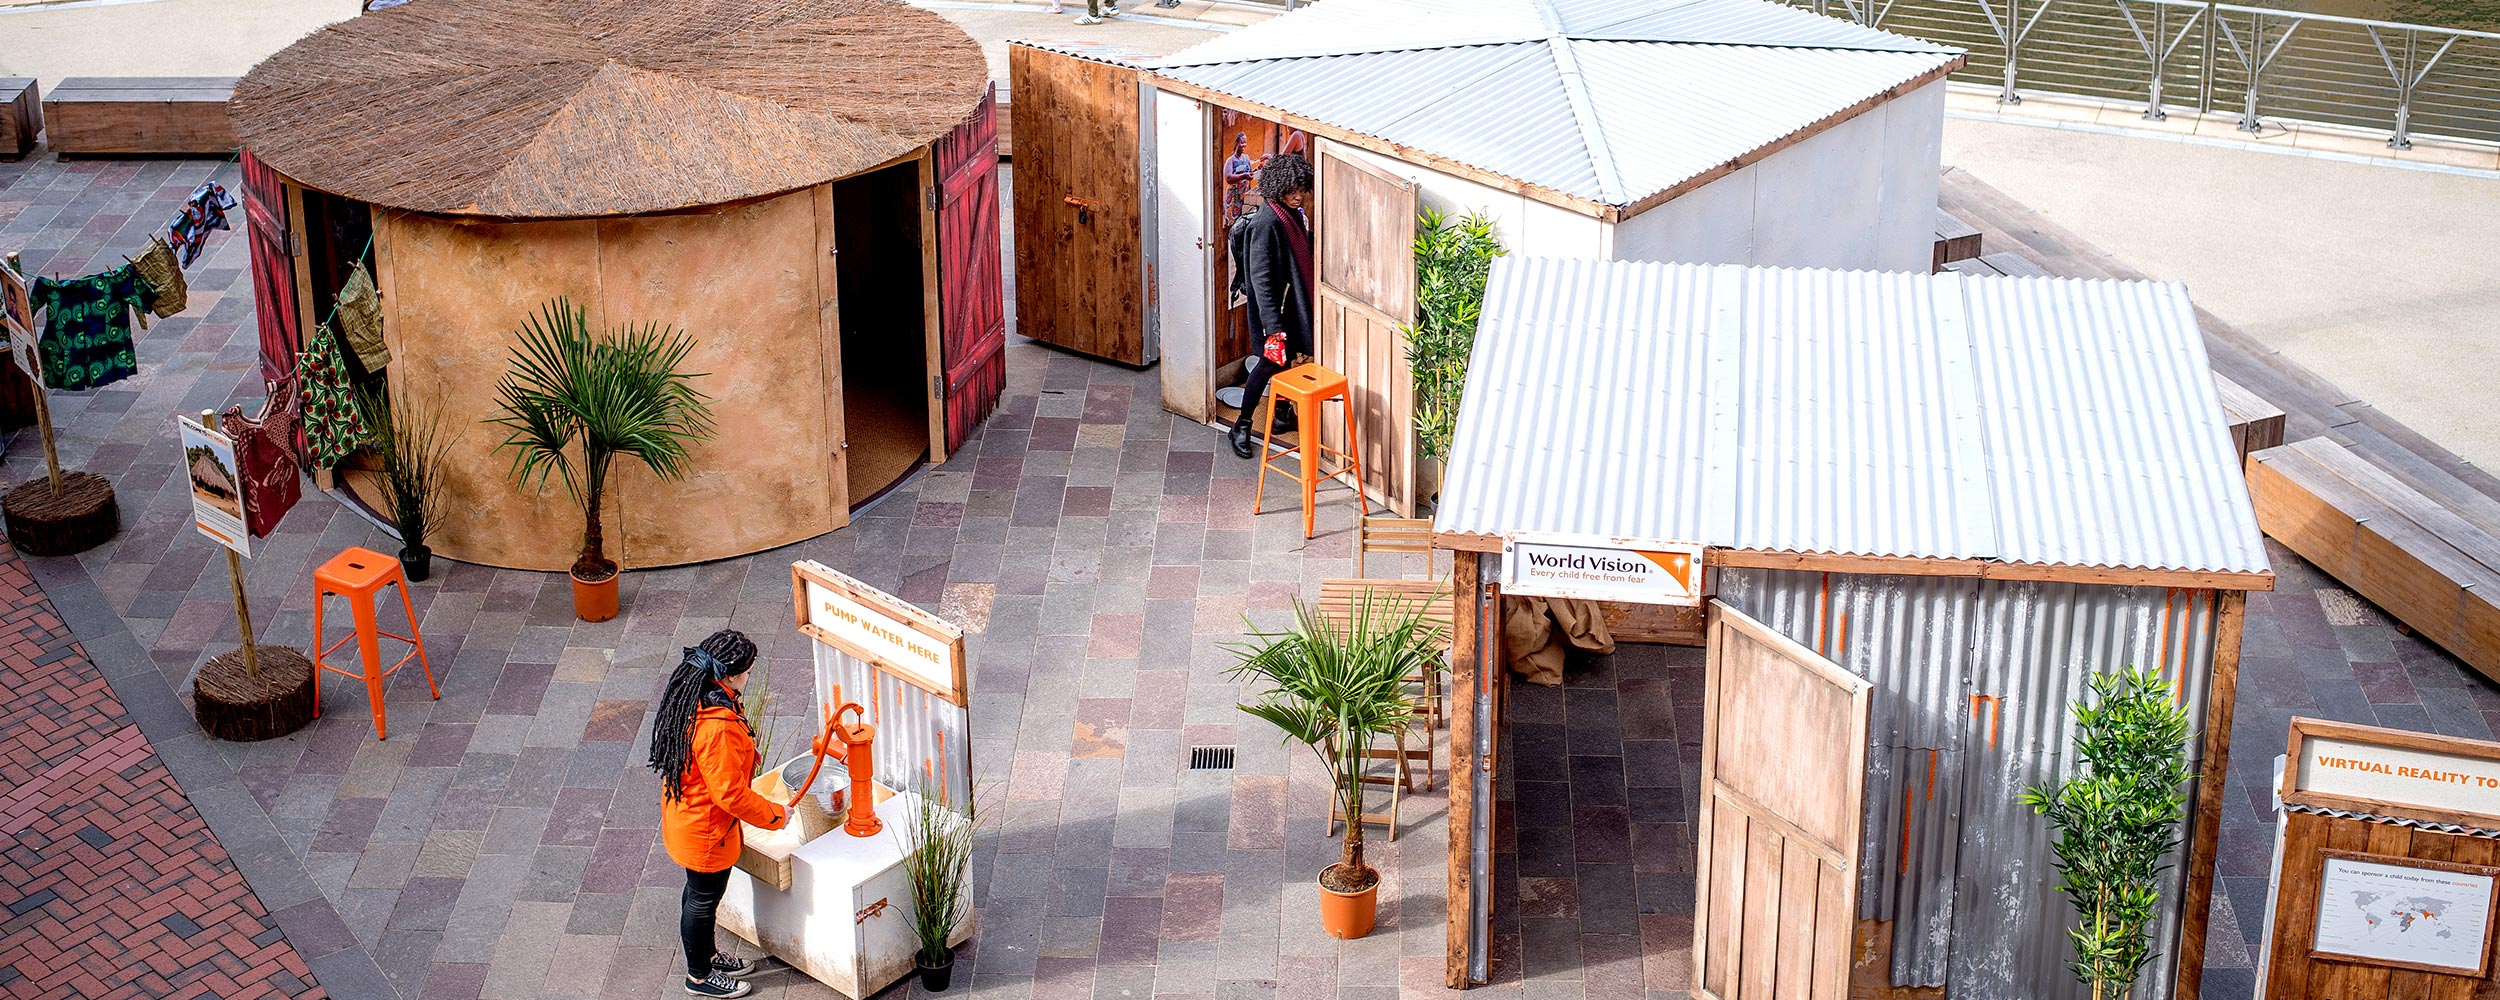 World_Vision_Village_of_hope_experiential_2